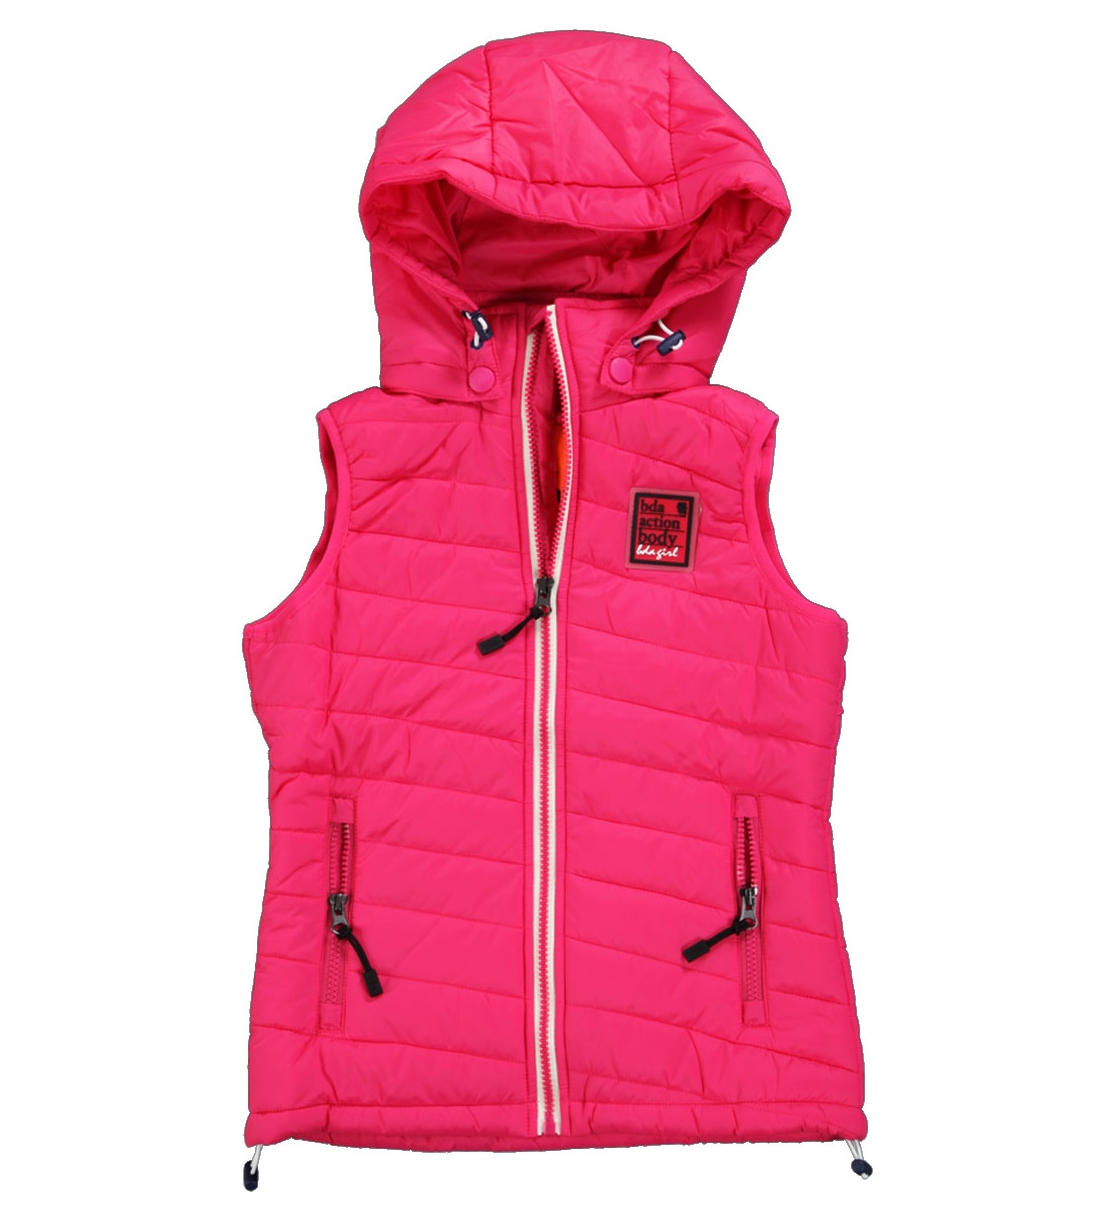 Body Action Παιδικό Αθλητικό Μπουφάν Αμάνικο Kids Ultralight Quilted Vest 072601